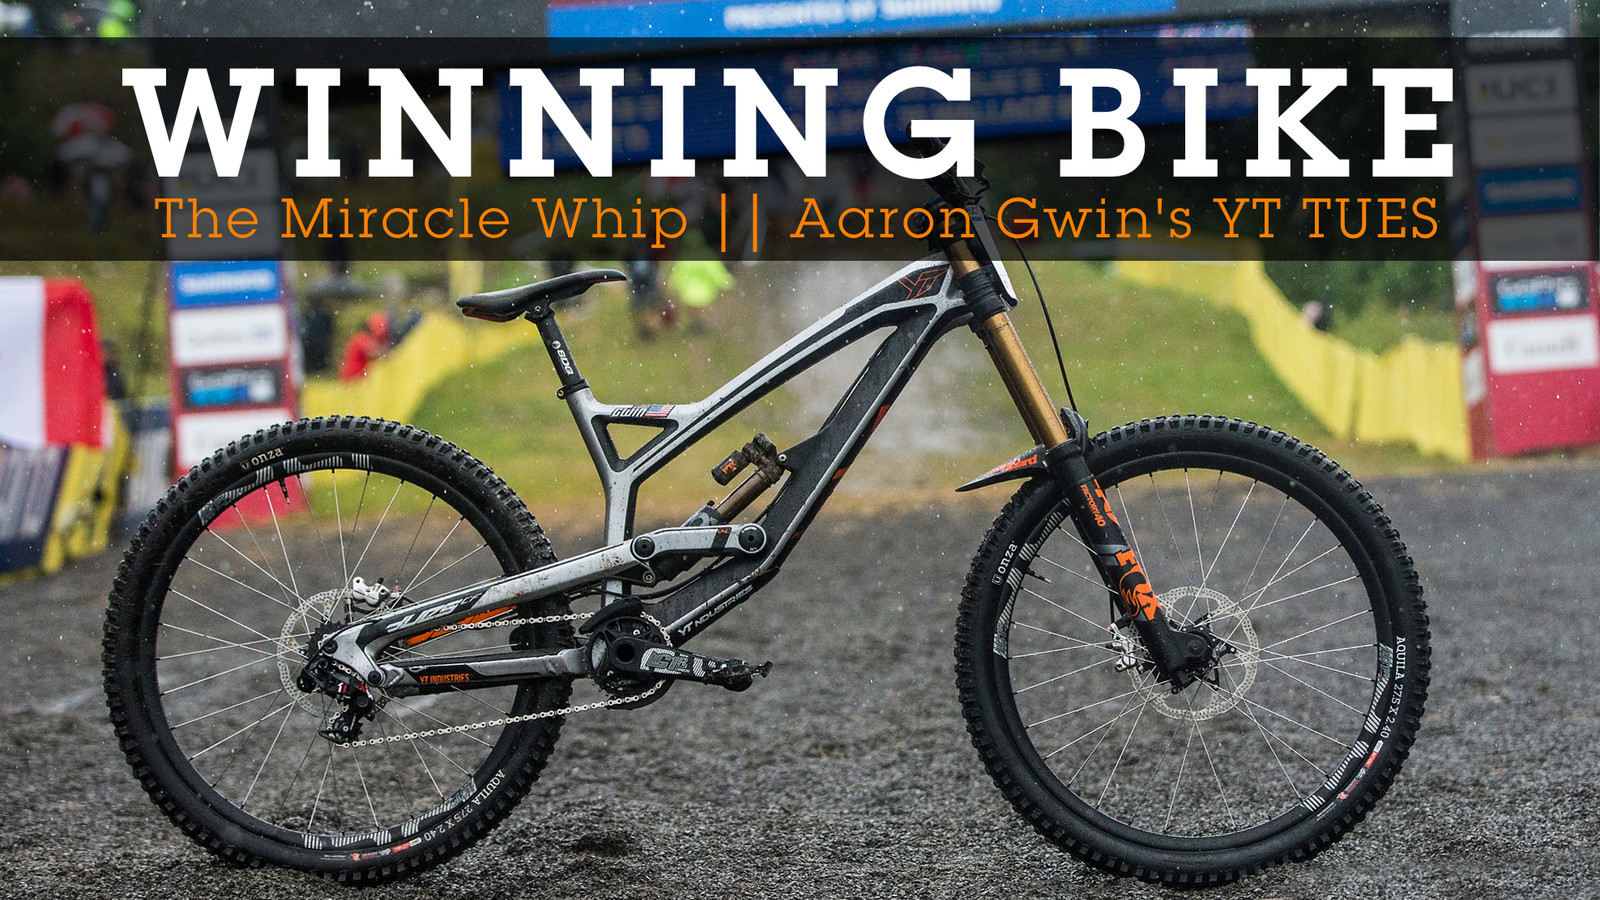 WINNING BIKE - Aaron Gwin's YT TUES at Mont-Sainte-Anne